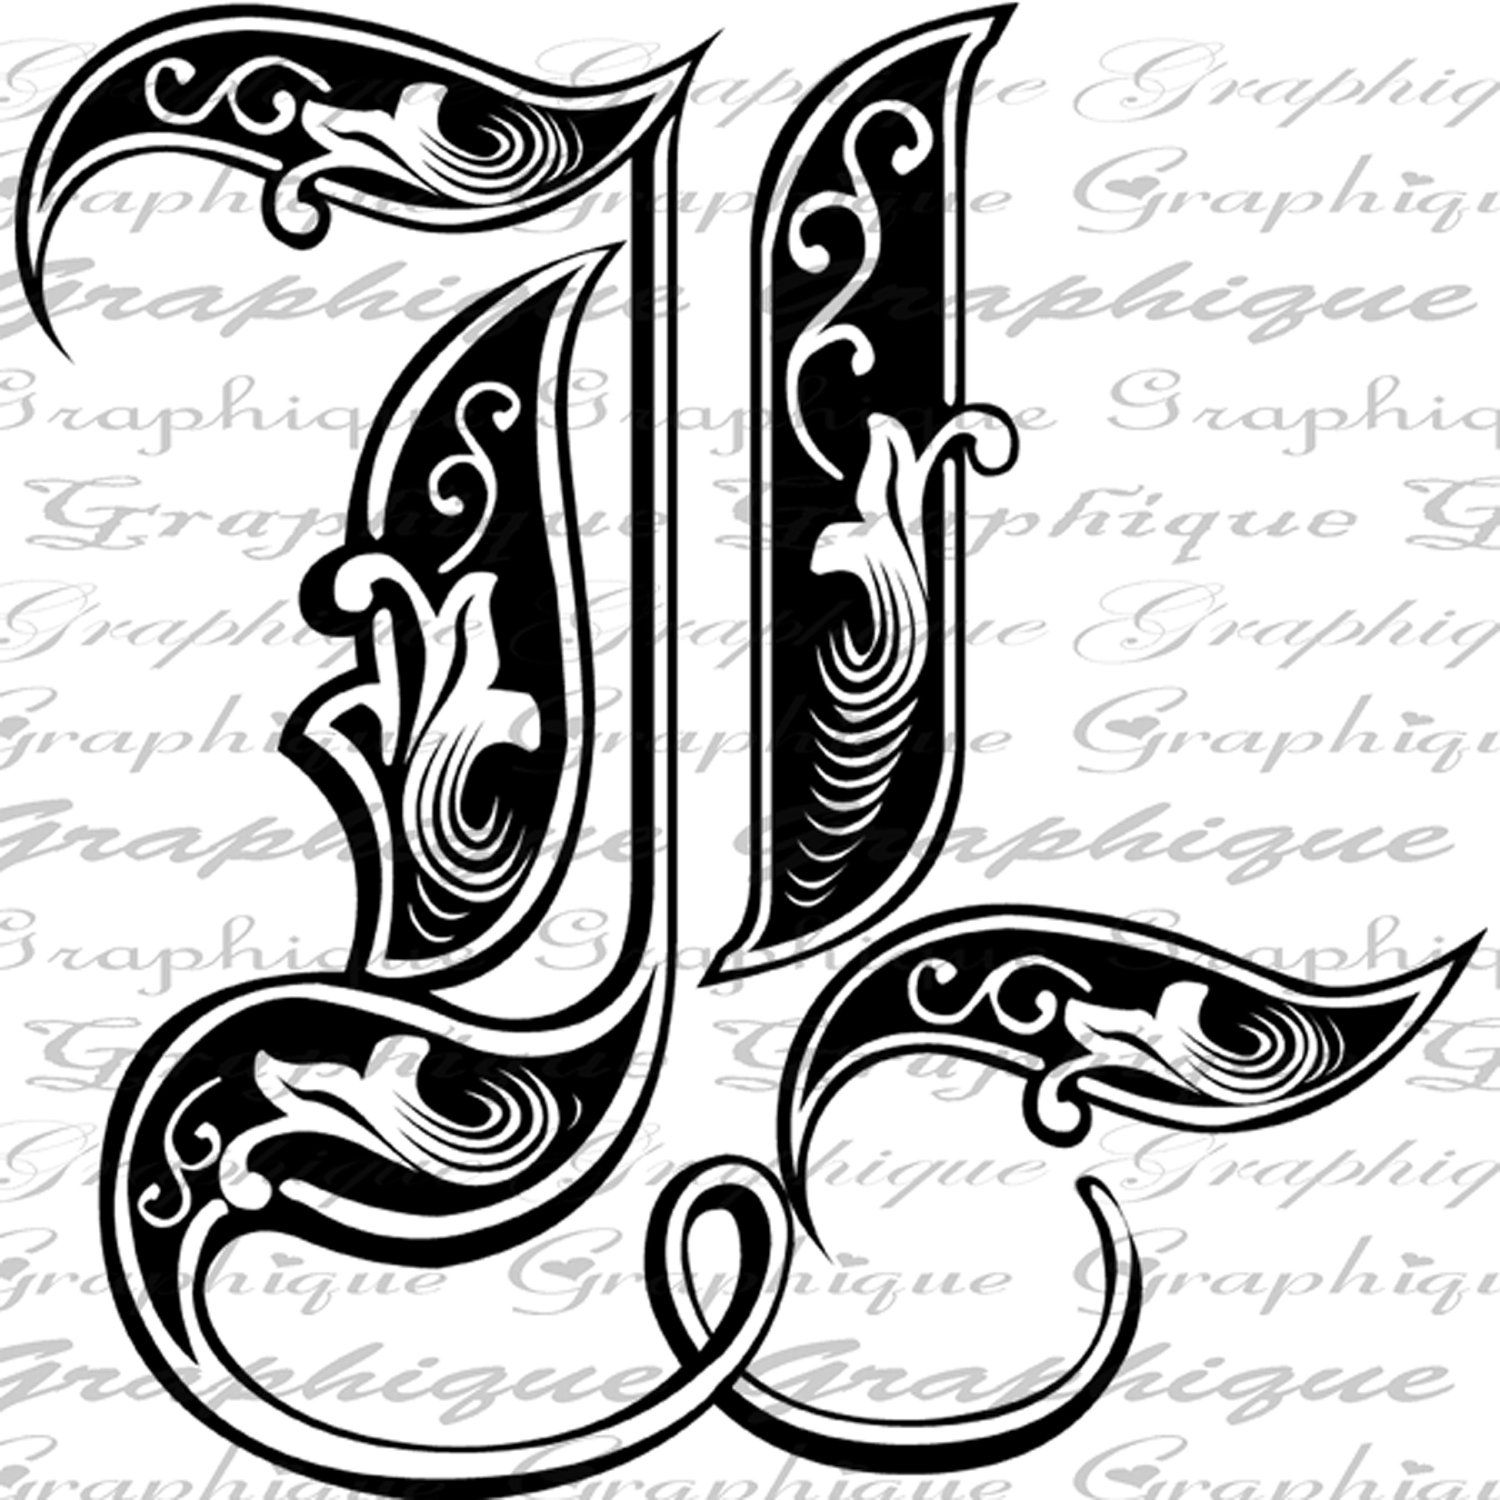 LETTER Initial L Monogram Old ENGRAVING Style Type Text